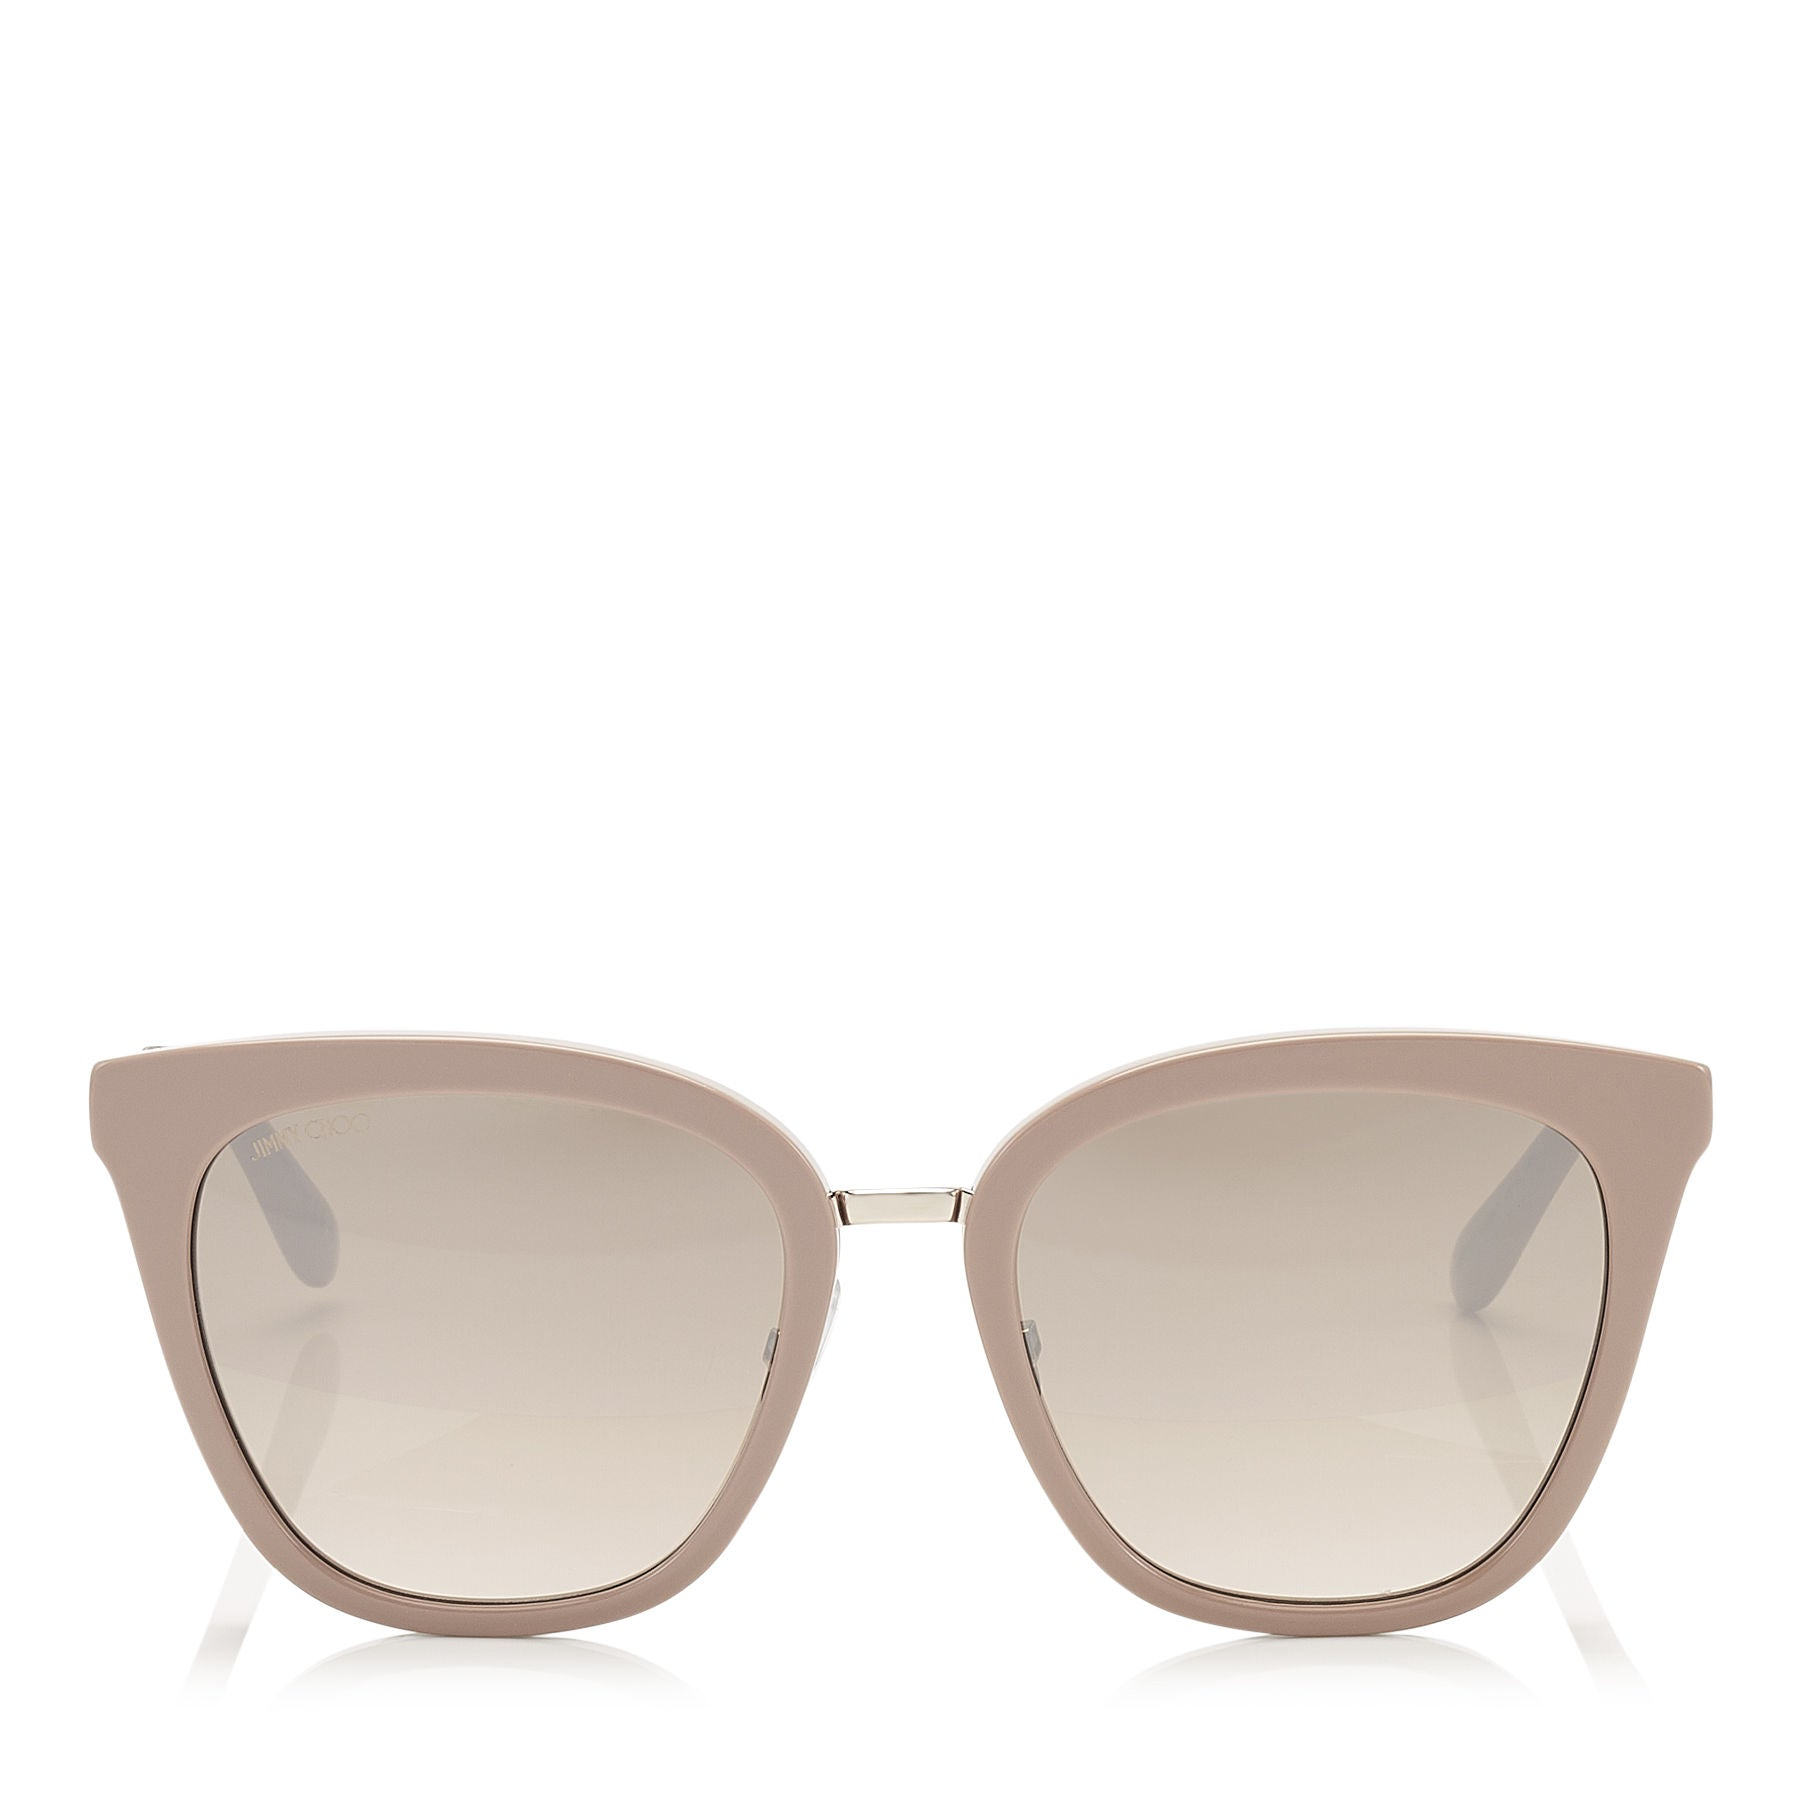 JIMMY CHOO Fabry Nude Acetate Cat-Eye Sunglasses with Glitter Detail ITEM NO. FABRYS53EKDZ